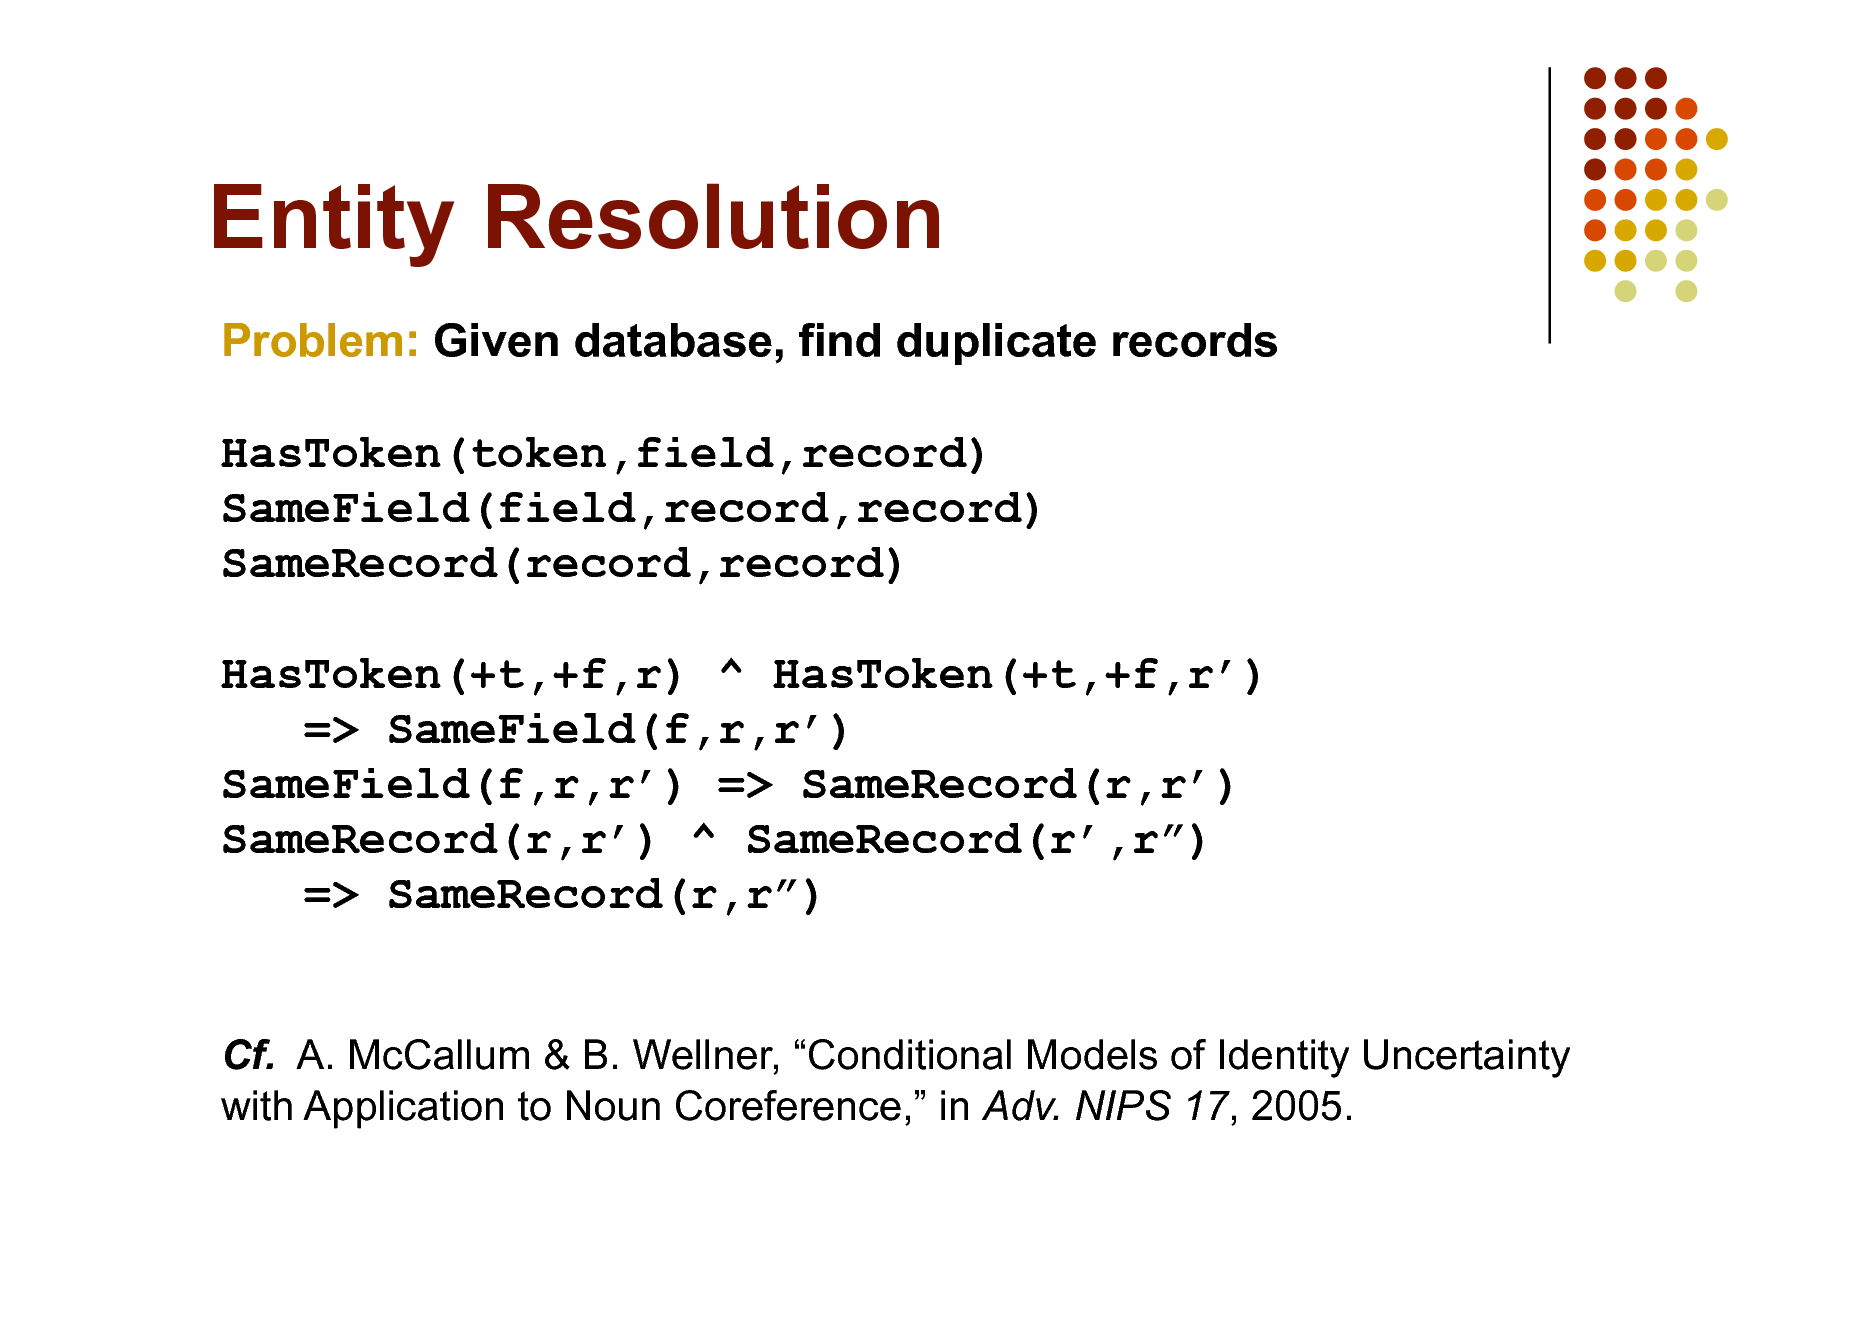 Slide: Entity Resolution Problem: Given database, find duplicate records HasToken(token,field,record) SameField(field,record,record) SameRecord(record,record) HasToken(+t,+f,r) ^ HasToken(+t,+f,r) => SameField(f,r,r) SameField(f,r,r) => SameRecord(r,r) SameRecord(r,r) ^ SameRecord(r,r) => SameRecord(r,r) Cf. A. McCallum & B. Wellner, Conditional Models of Identity Uncertainty with Application to Noun Coreference, in Adv. NIPS 17, 2005.